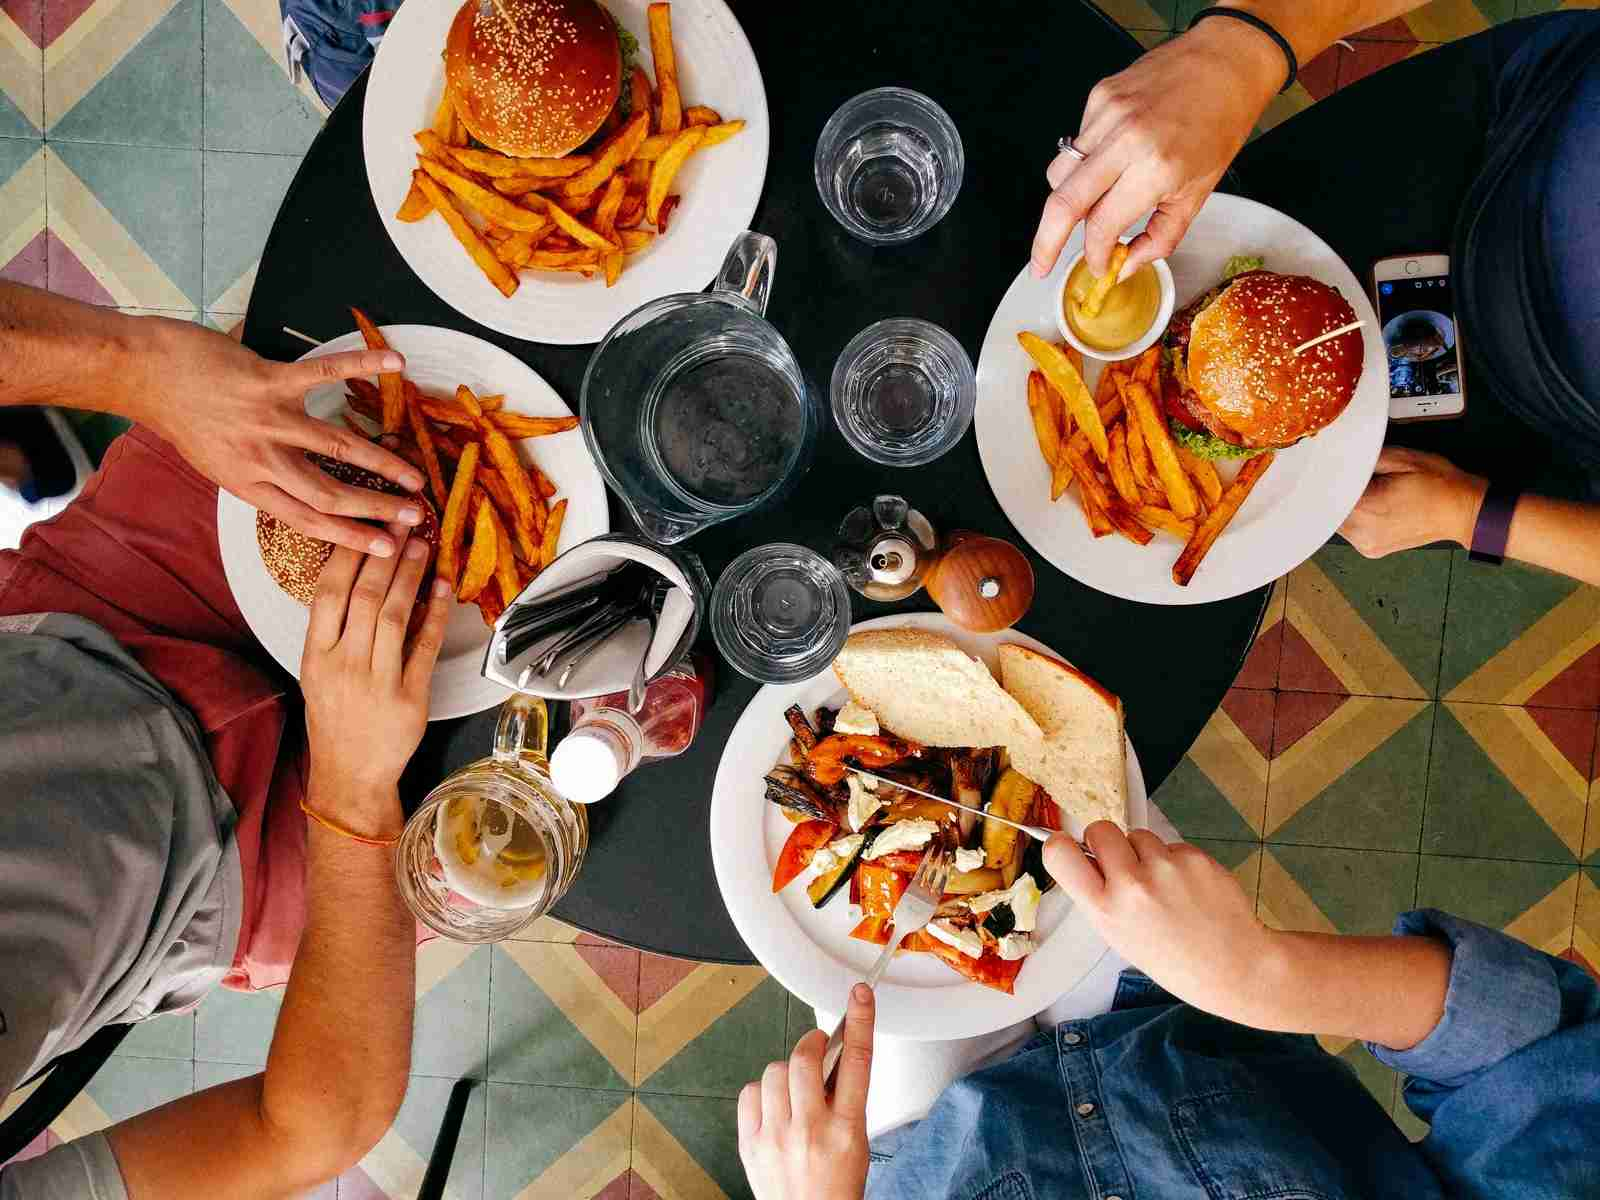 A dinner with friends can help you reach your minimum spend. Let